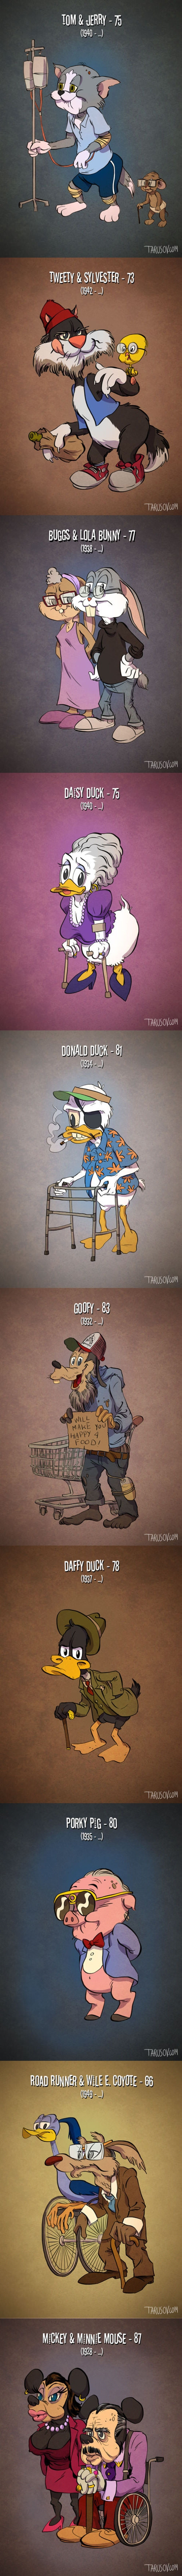 Cartoon characters get old